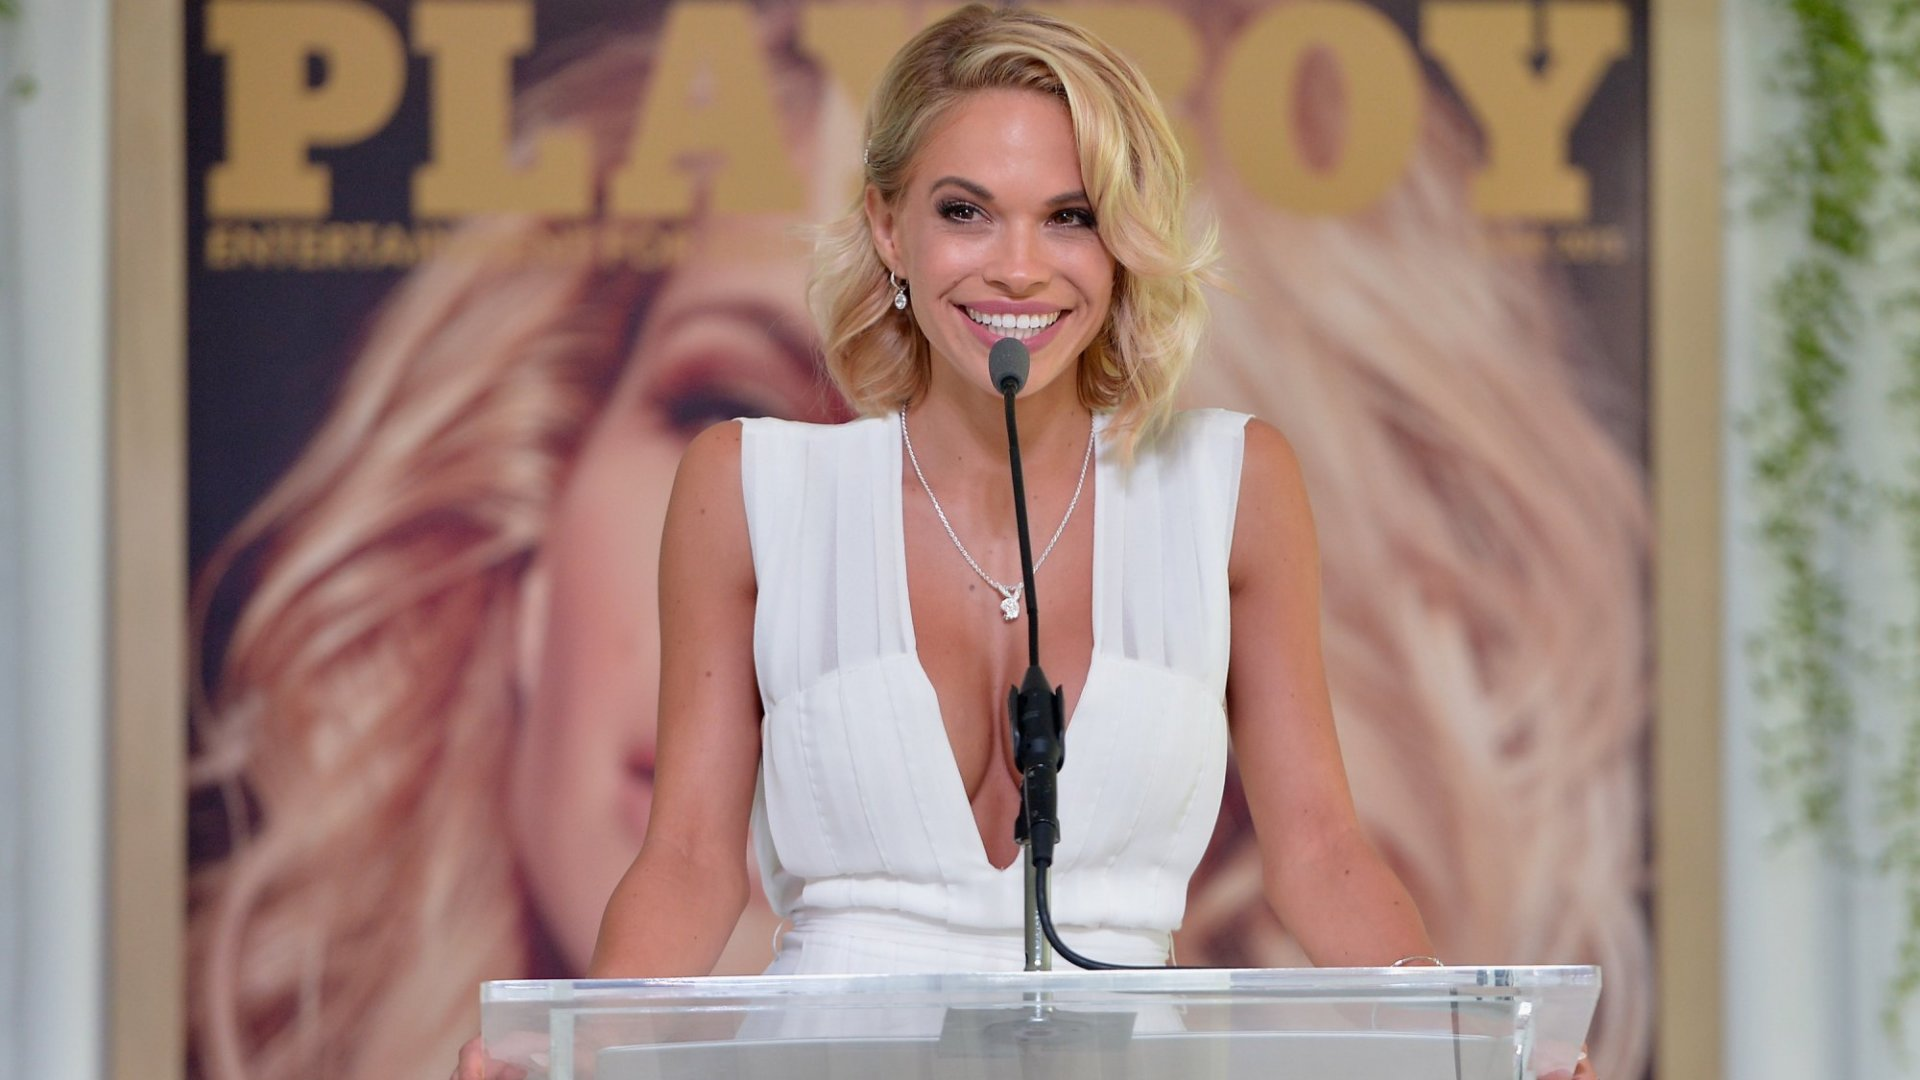 Why This Playboy Playmate Was Fired and Banned From the Gym